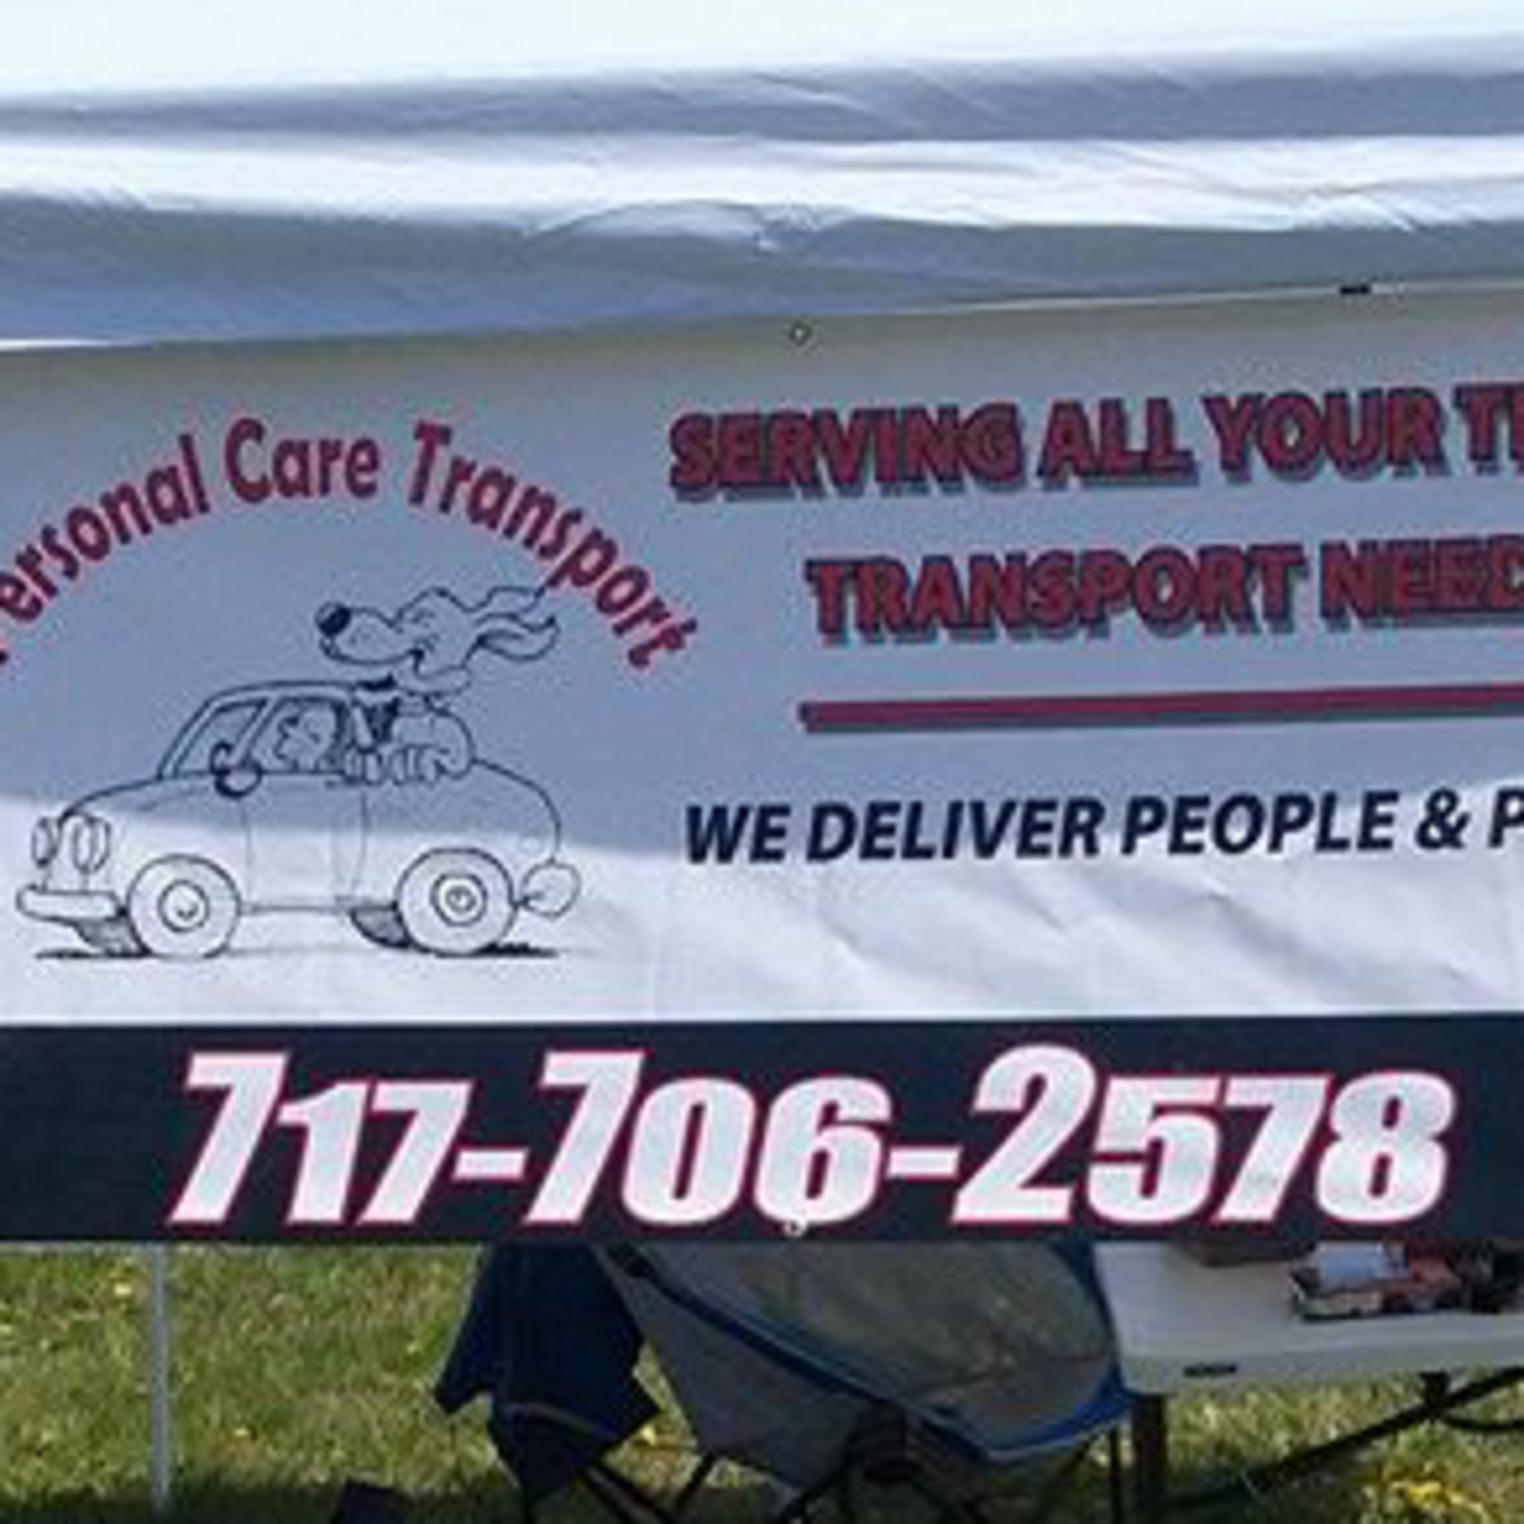 Personal Care Transport